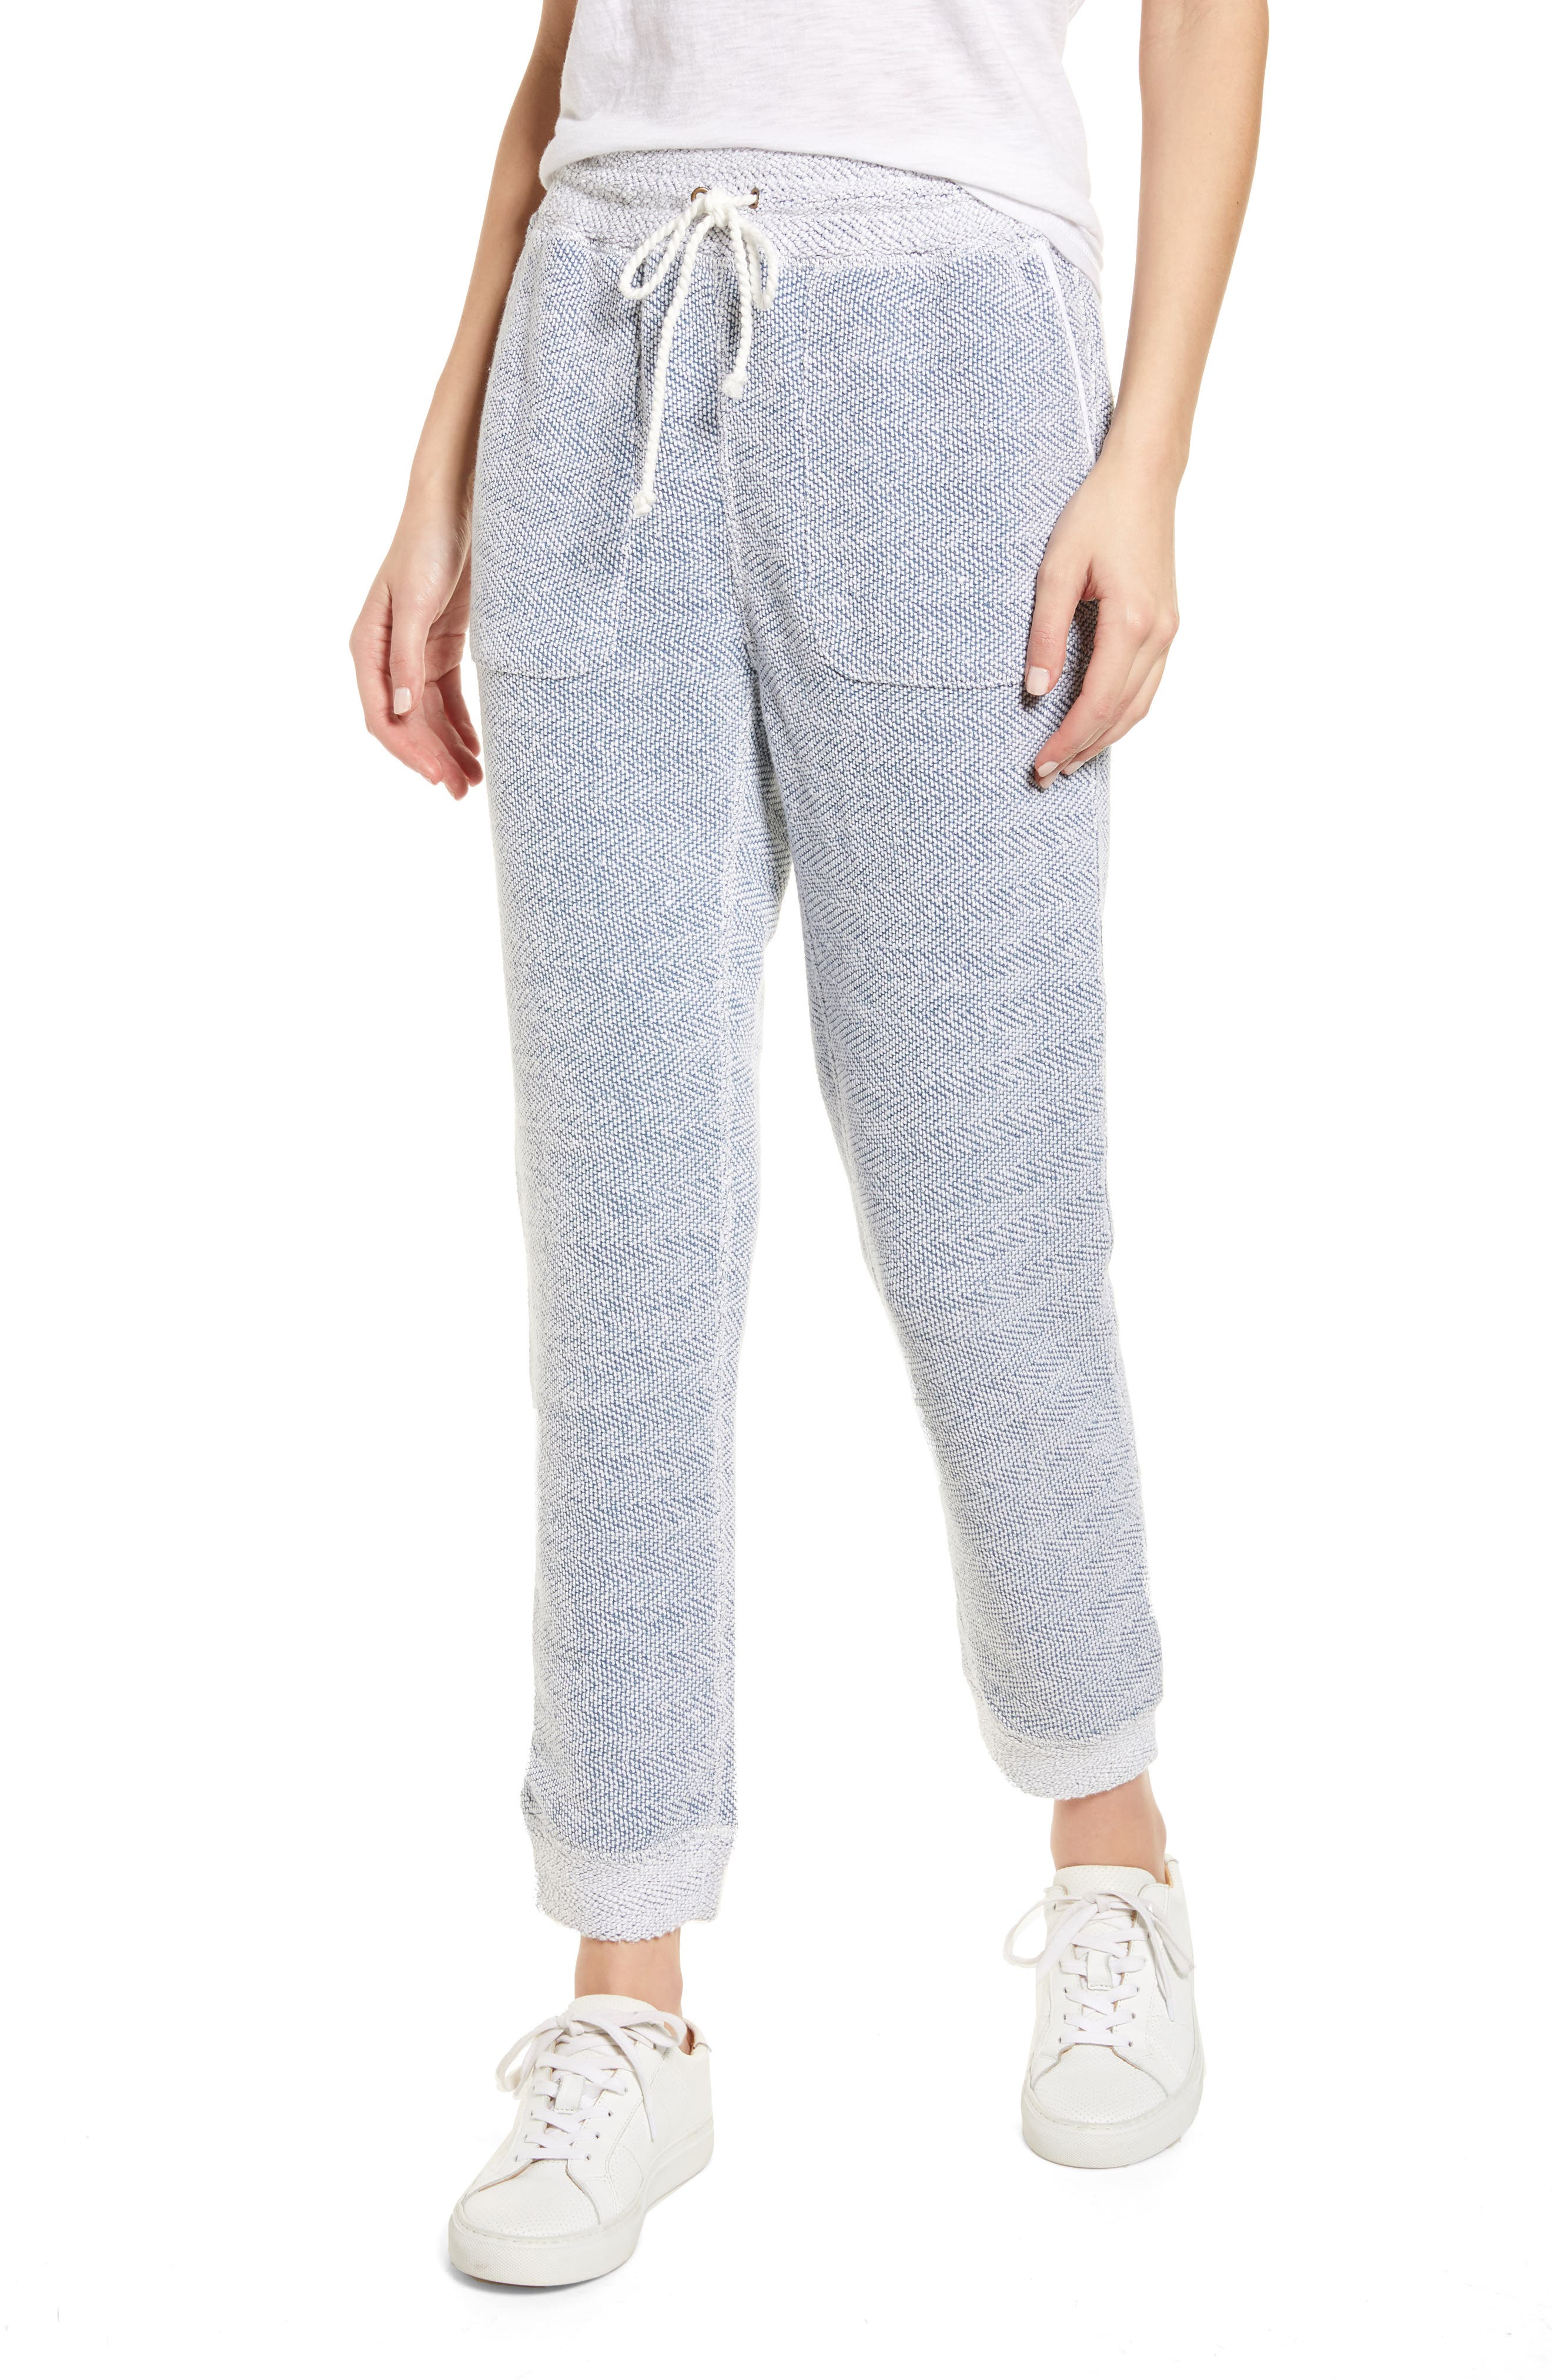 Seabrook French Terry Jogger Pants